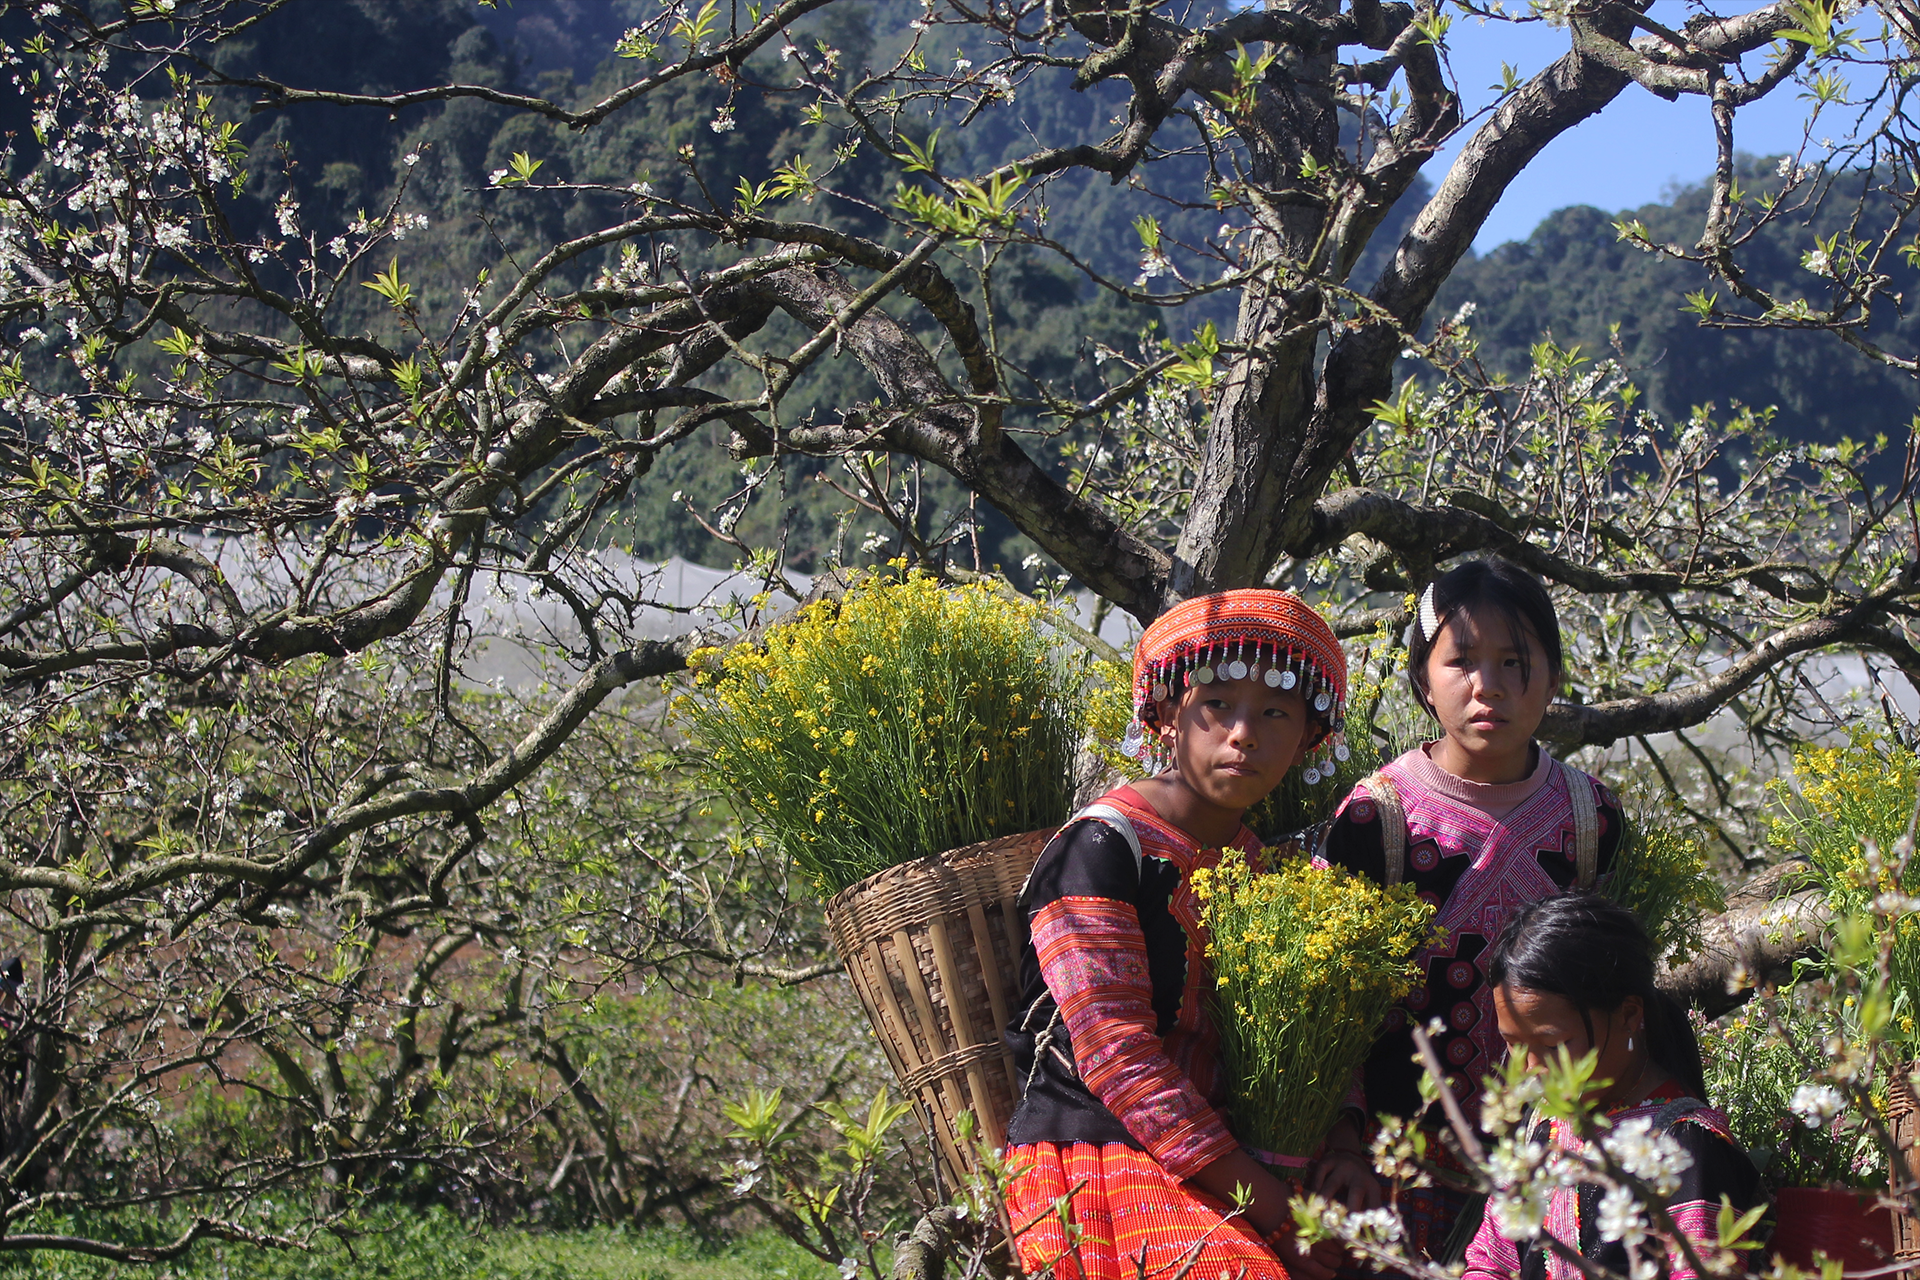 Recommended two-day itinerary to admire plum blossoms in Moc Chau